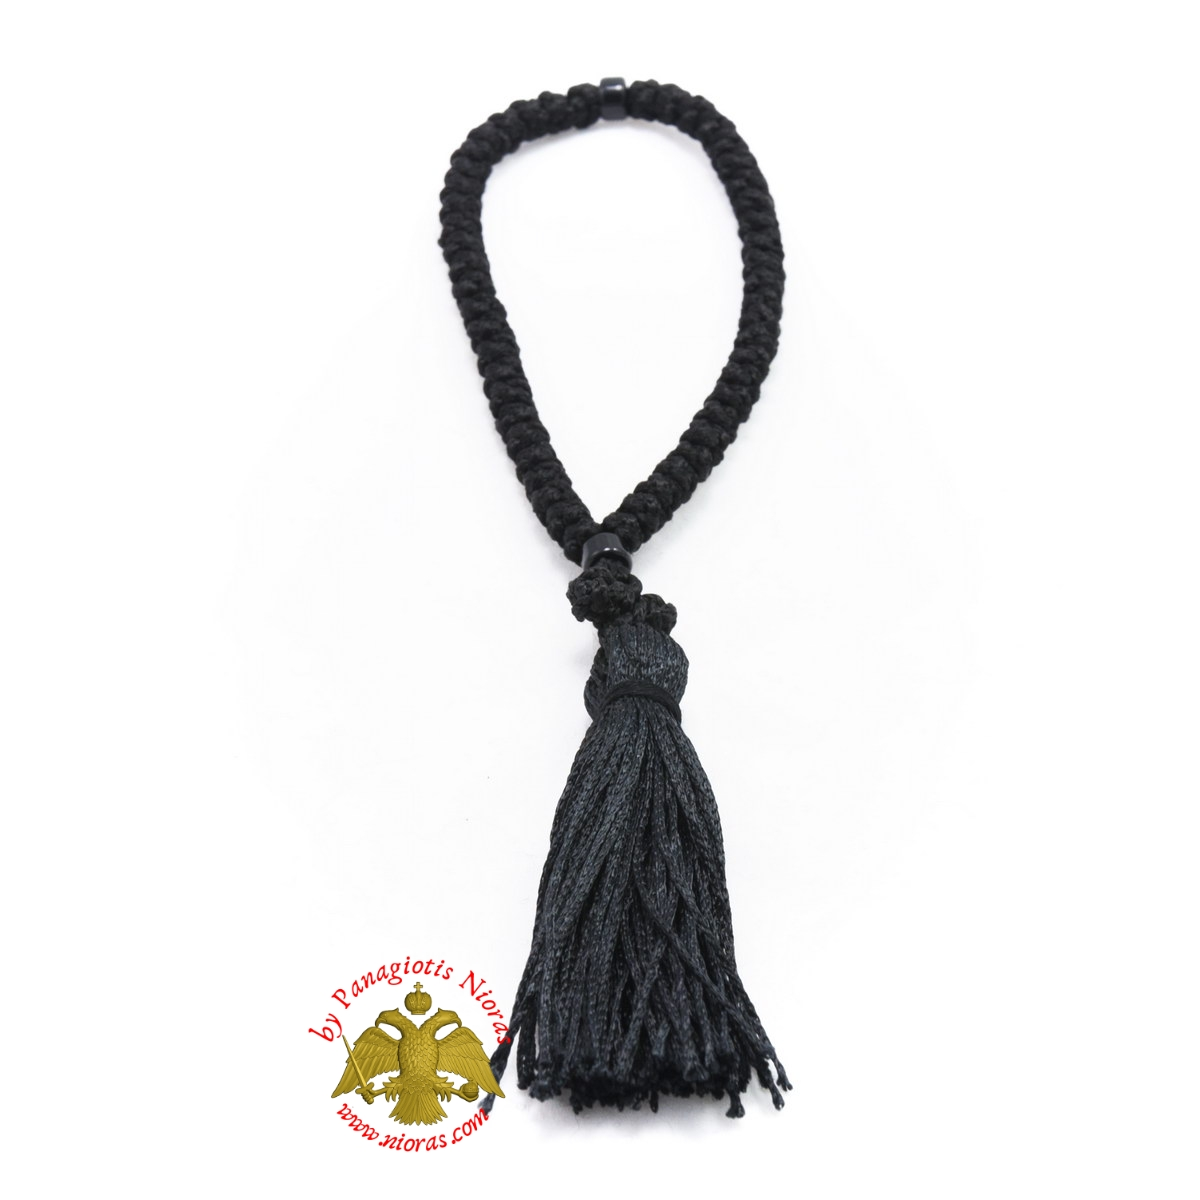 Orthodox Christian Black Prayer Rope 50 knots with Black Beads